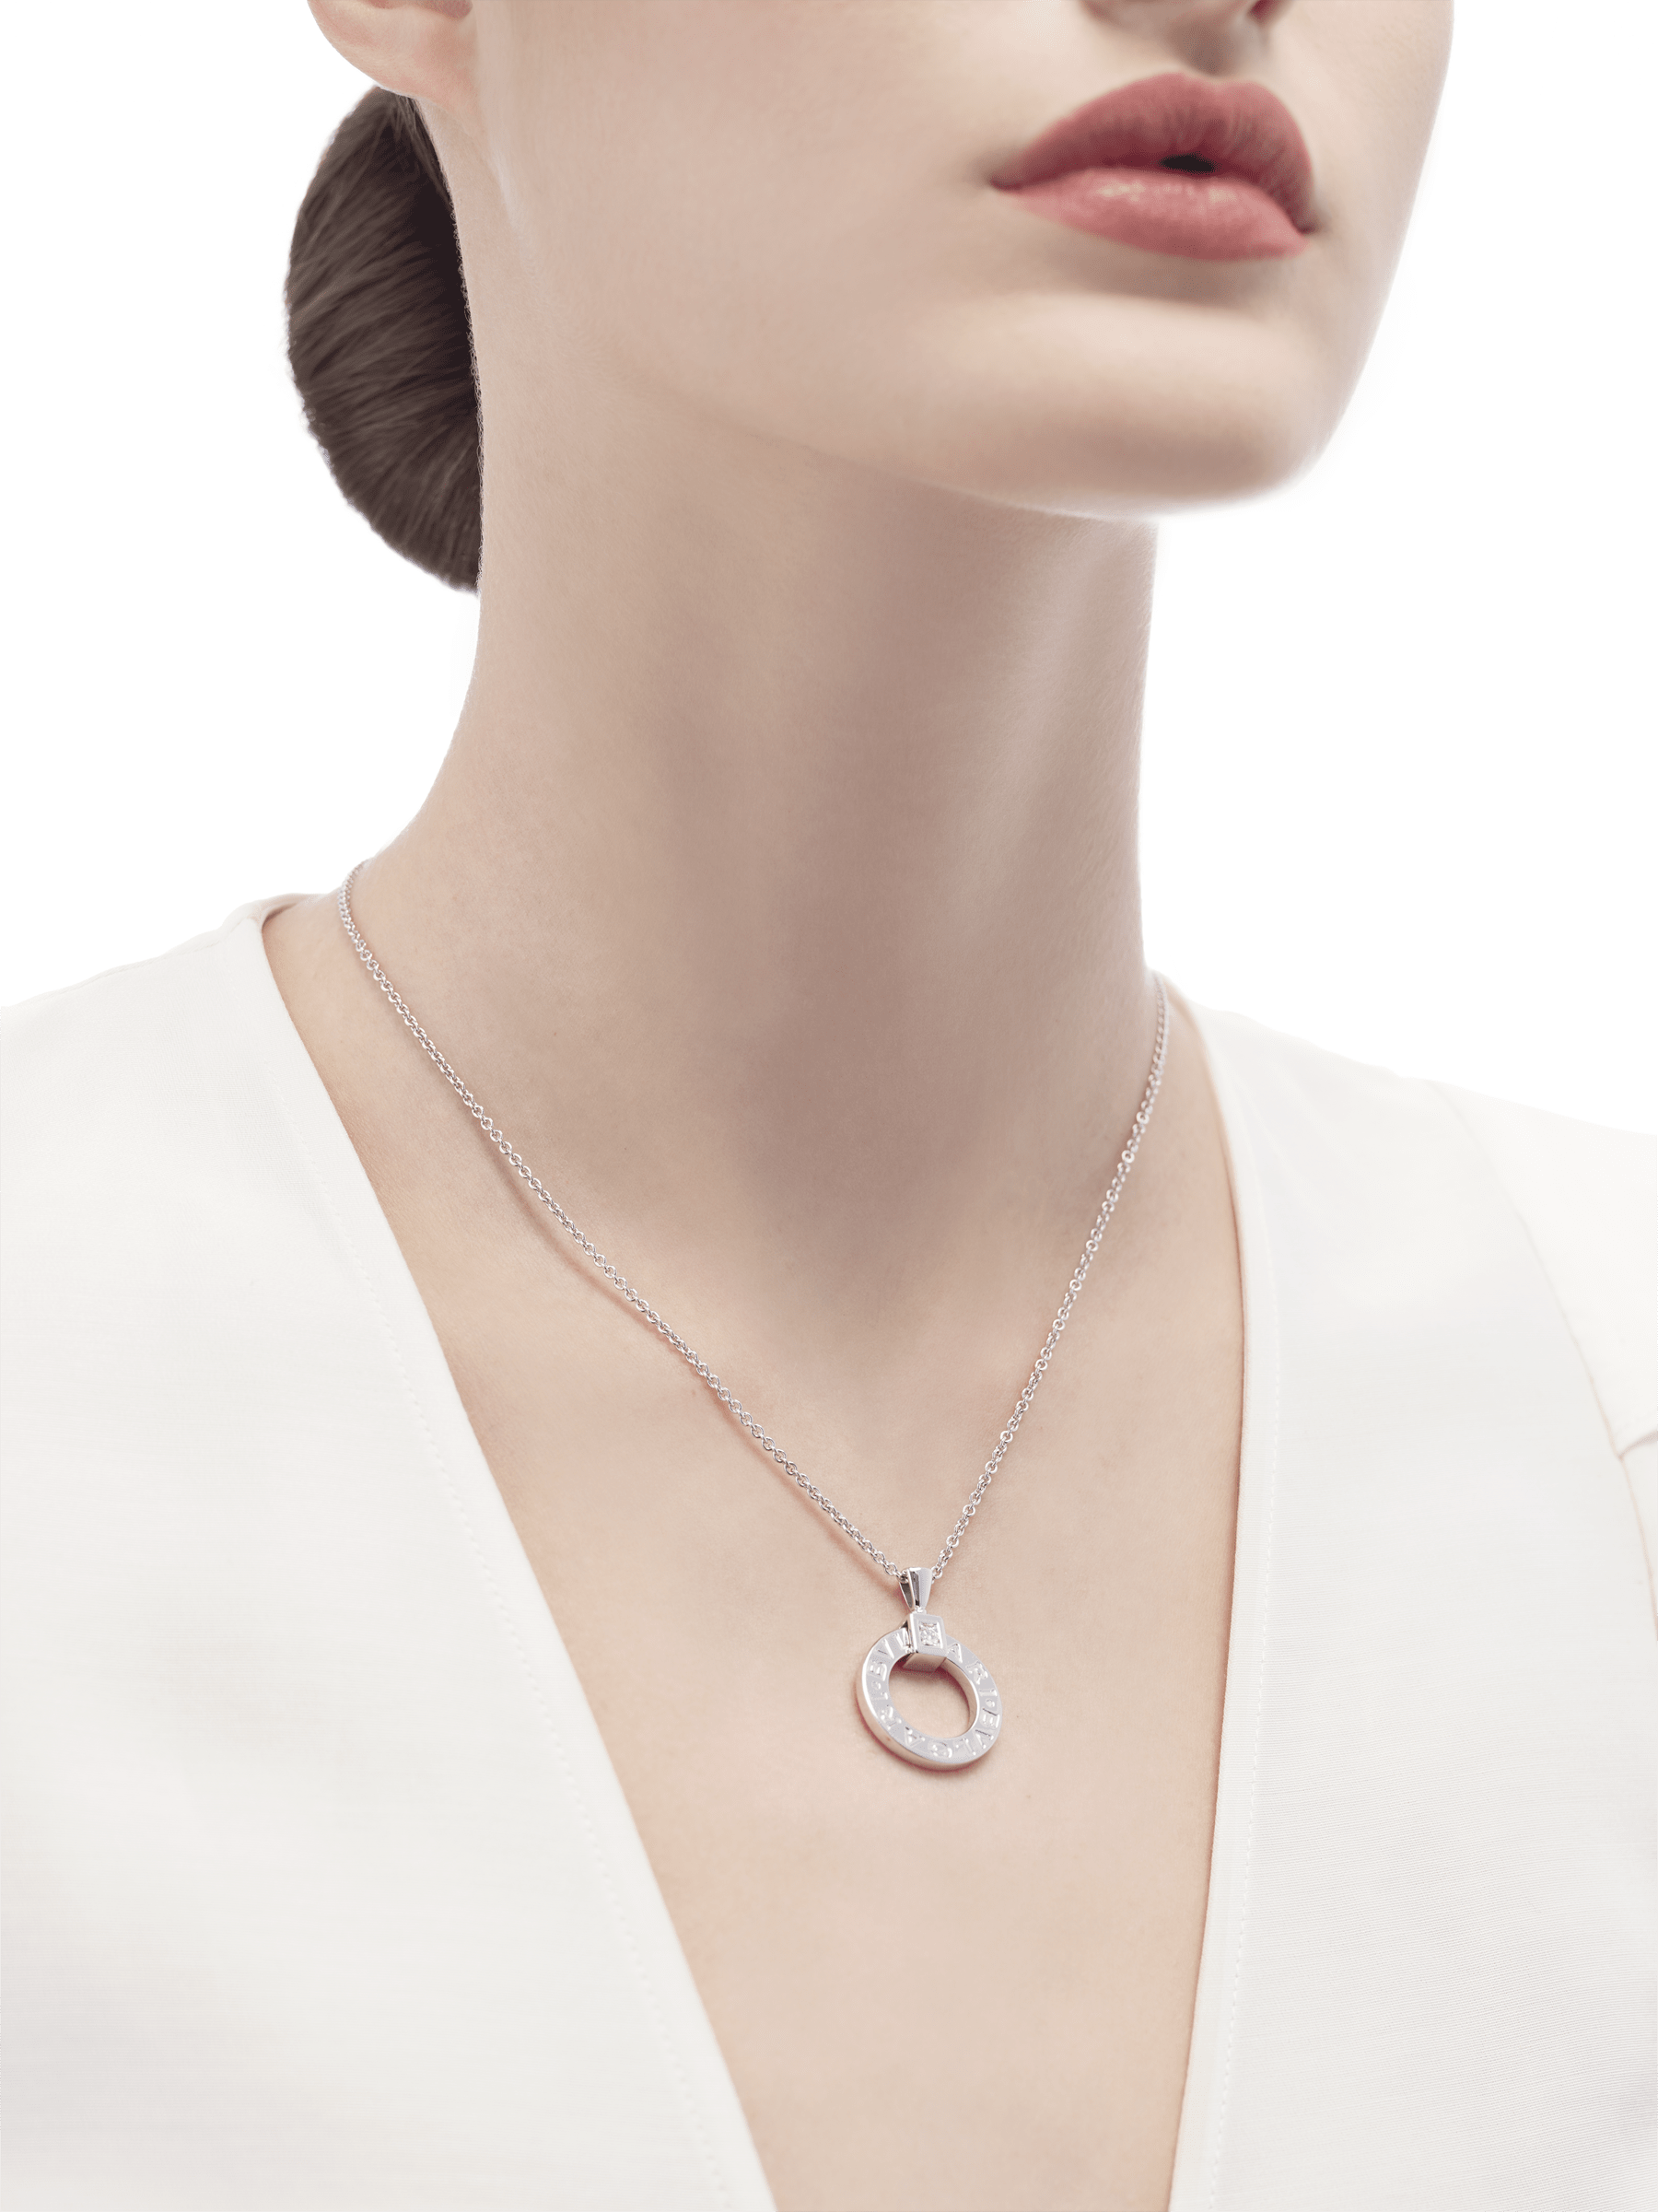 BVLGARI BVLGARI necklace with 18 kt white gold chain and 18 kt white gold pendant set with a diamond 342074 image 4